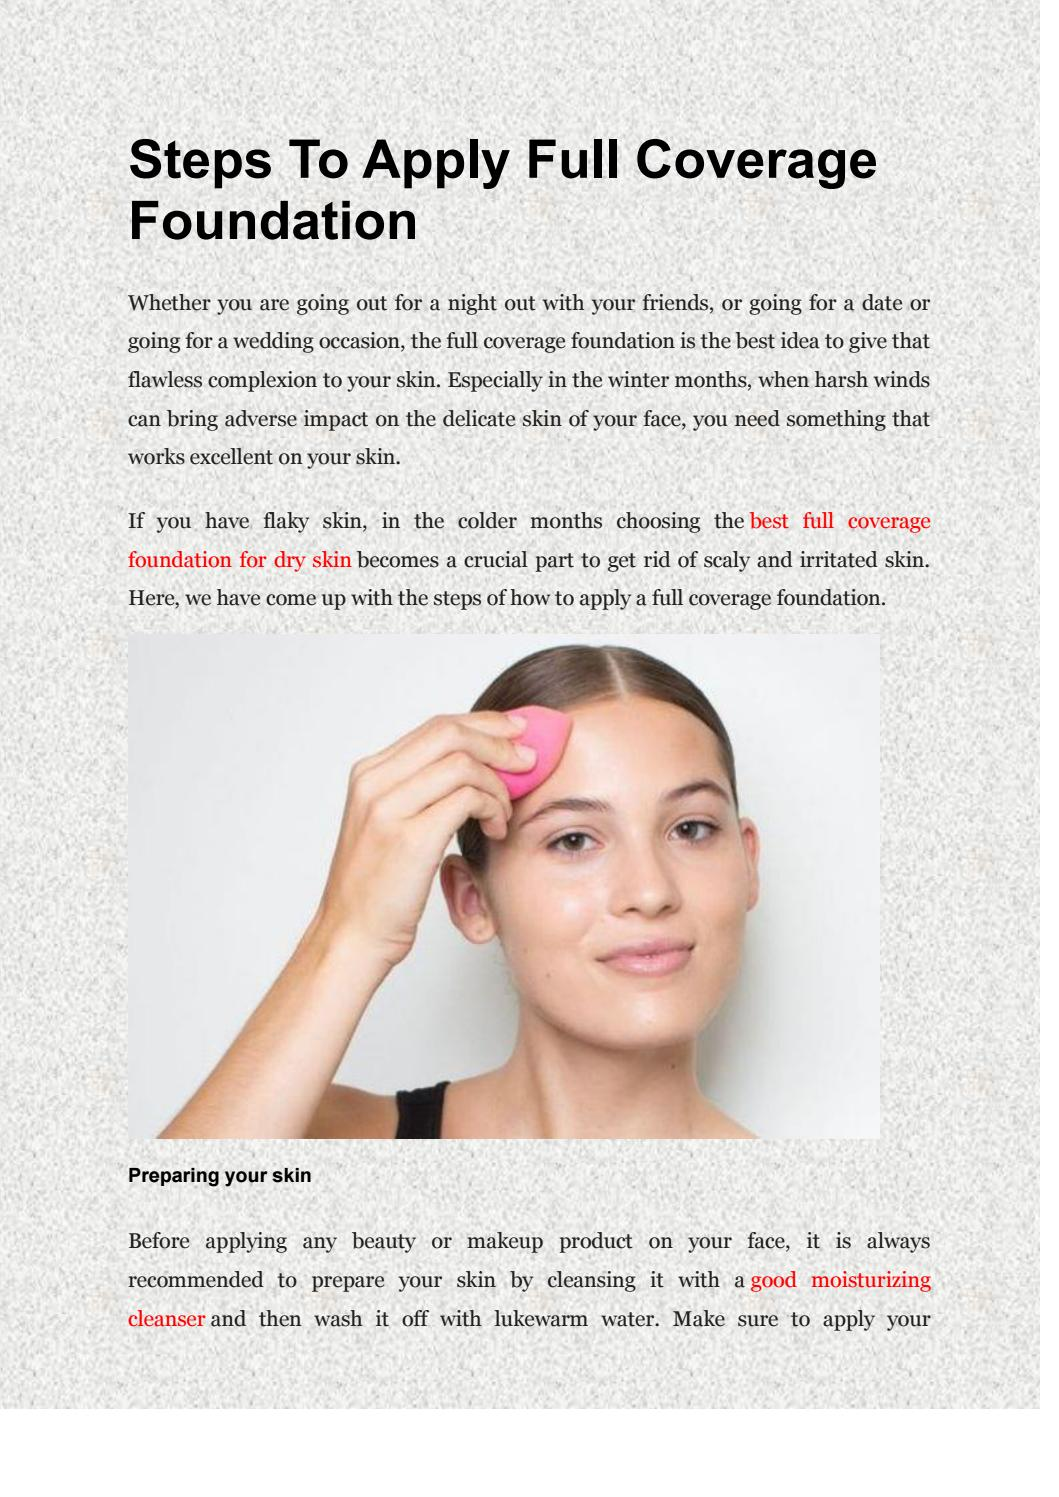 Steps To Apply Full Coverage Foundation By Jessicacarter Issuu